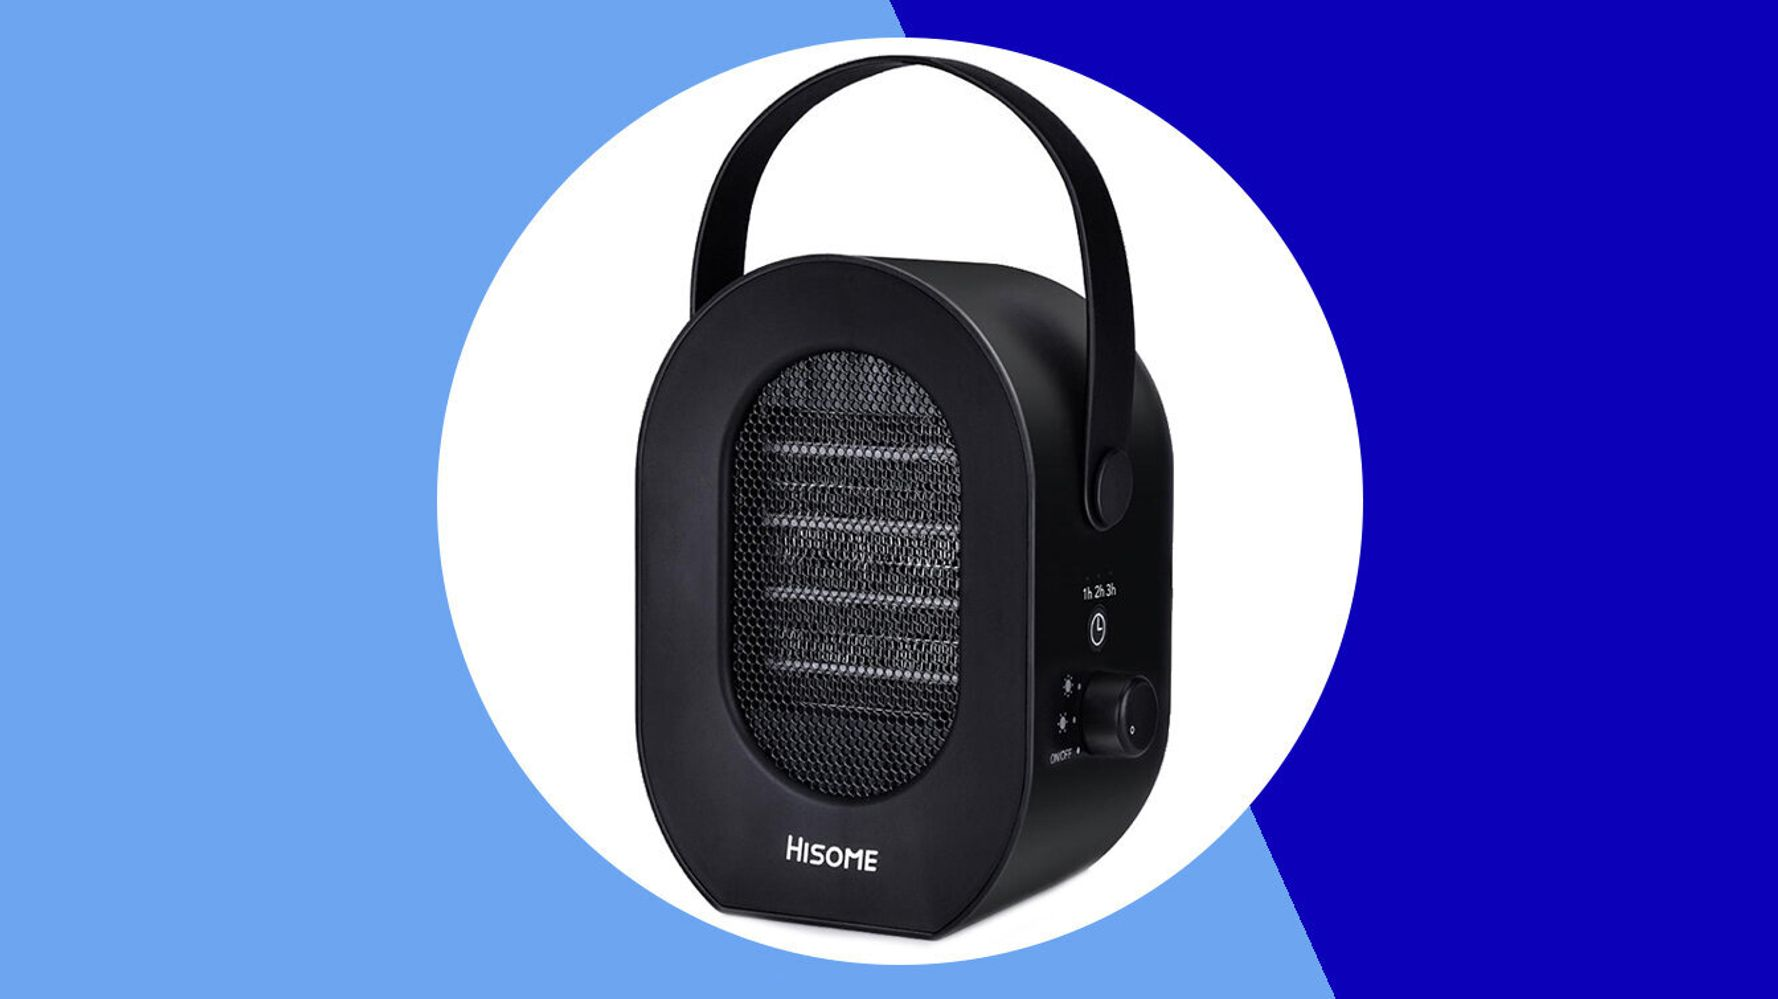 Deal Of The Day: This Top-Rated Portable Hisome Heater Is Stylish And On Sale